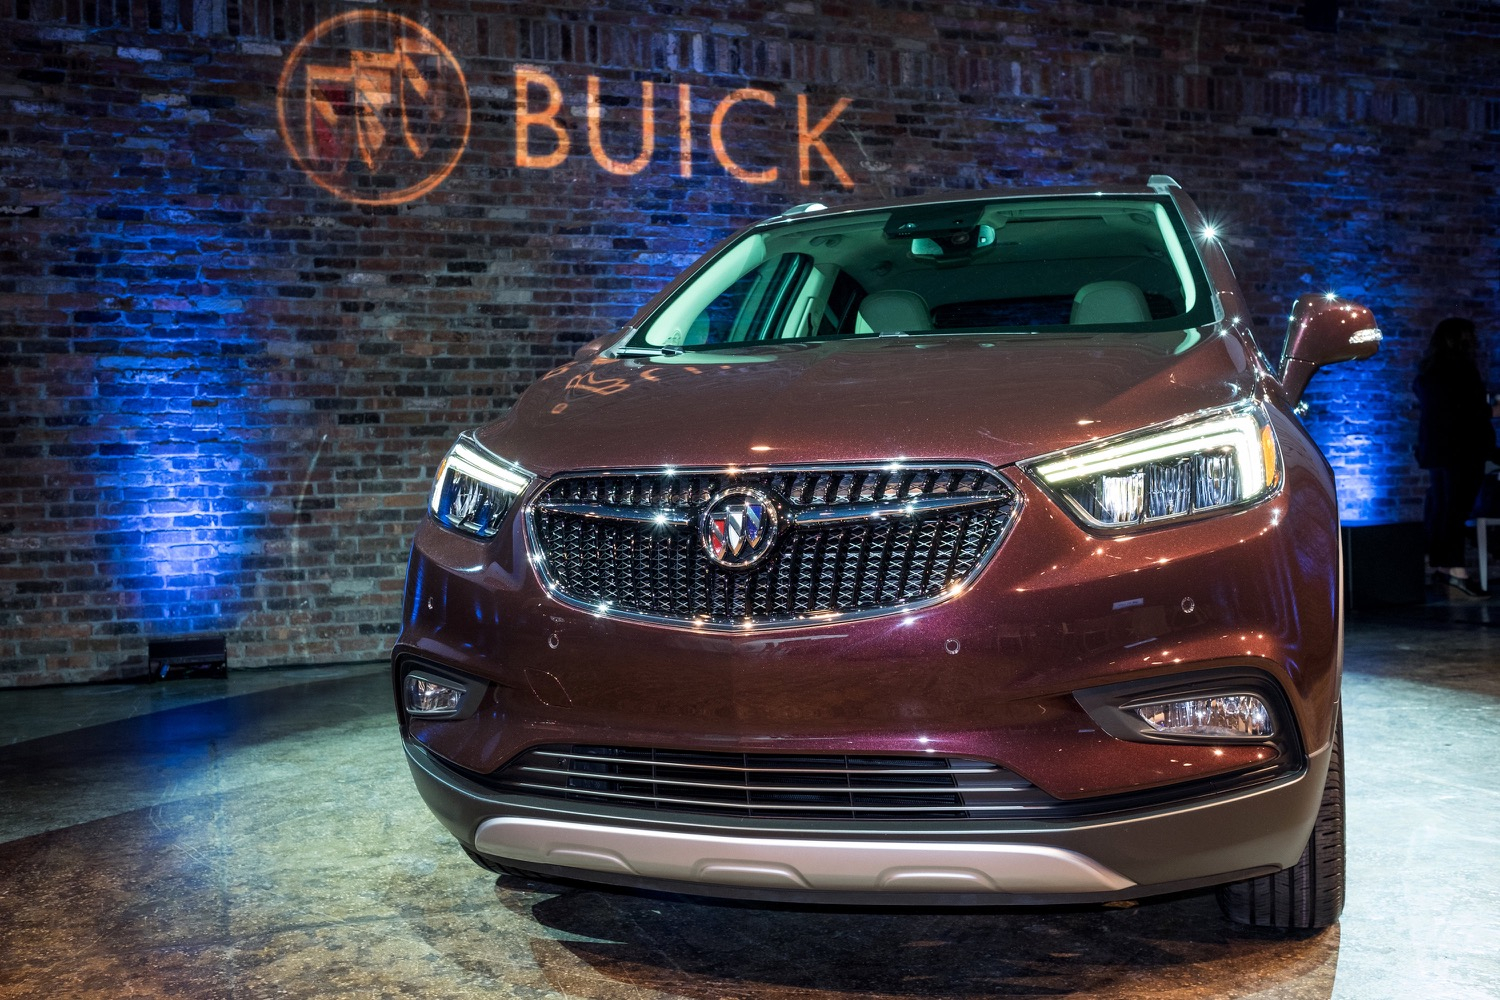 Buick Encore Is A Consumer Reports Best Used Car Under $20K 2022 Buick Encore Problems, Specs, Safety Rating